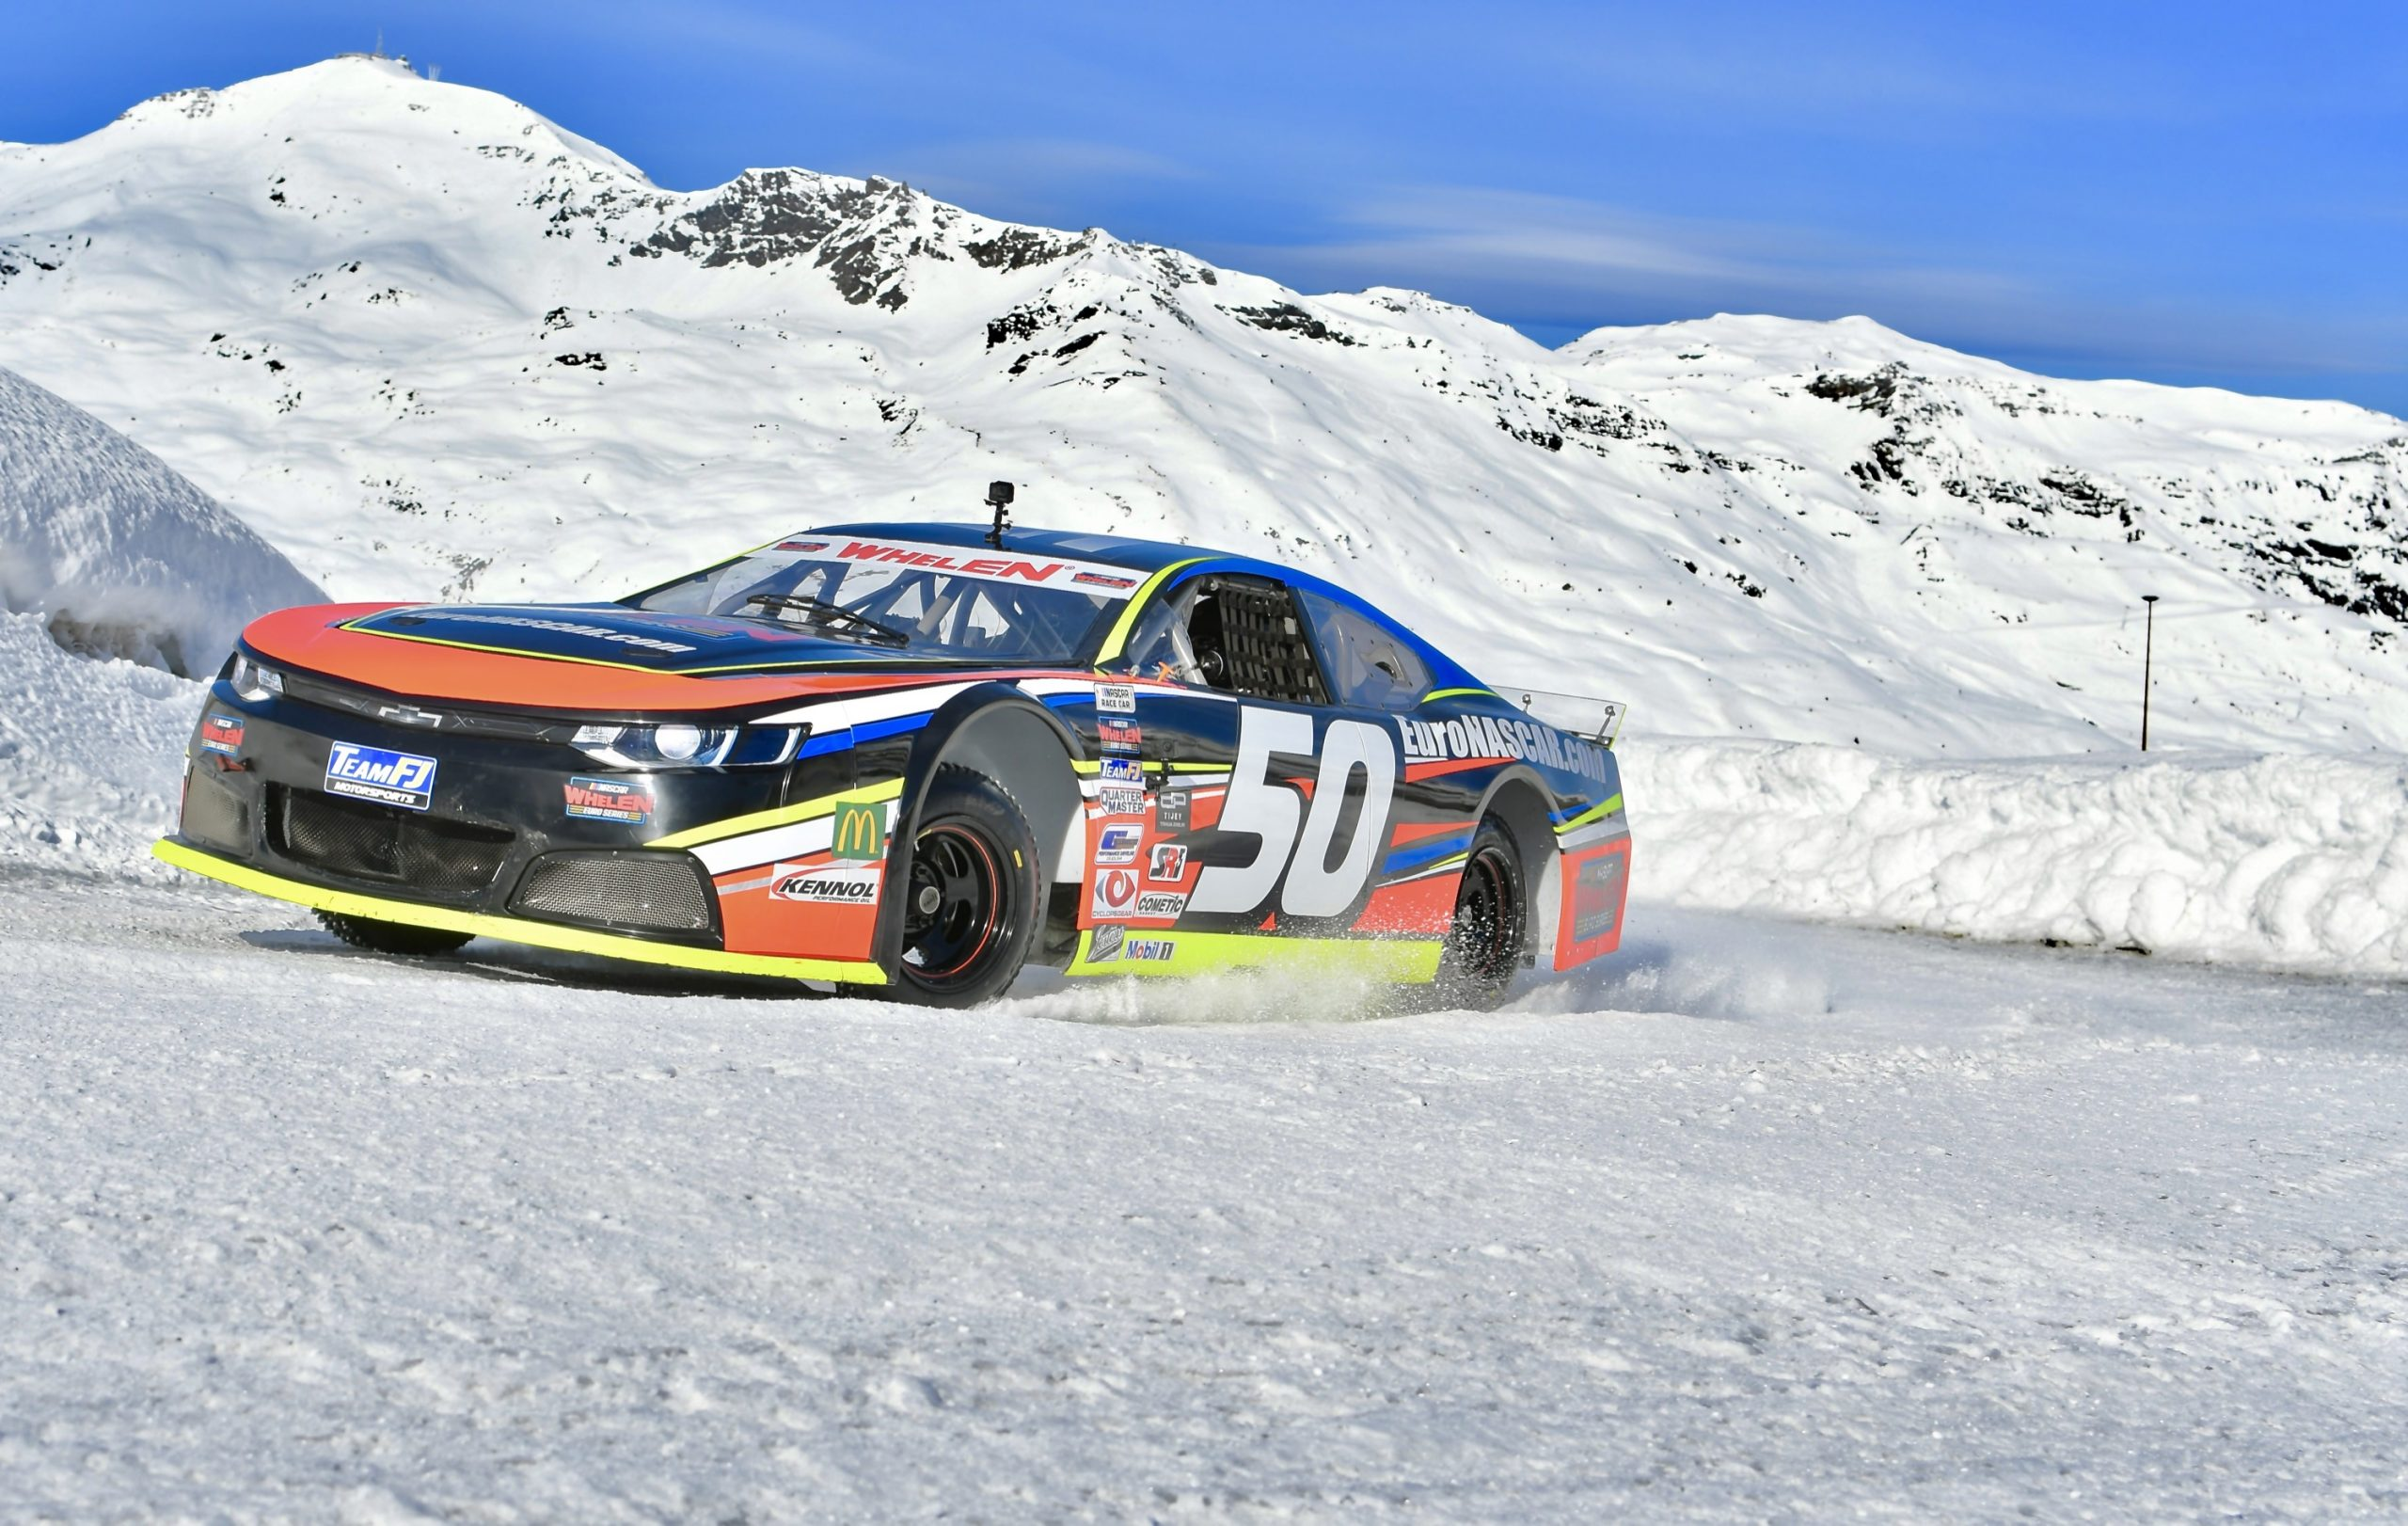 NASCAR on ice front three-quarter action